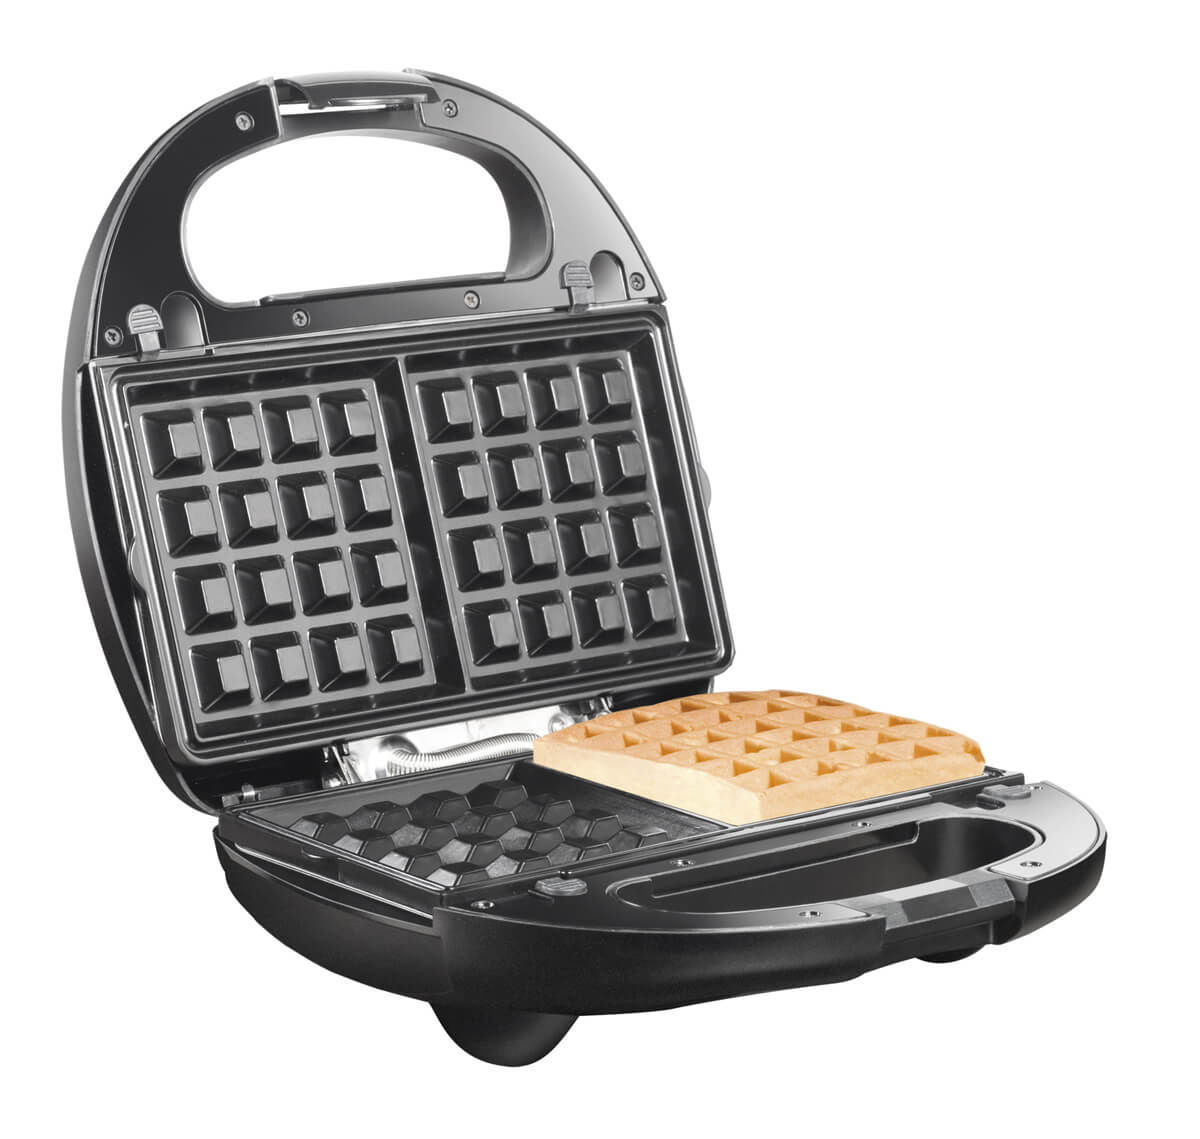 Image of Unold 230.020 Multi-Grill 3-in-1 Waffeleisen